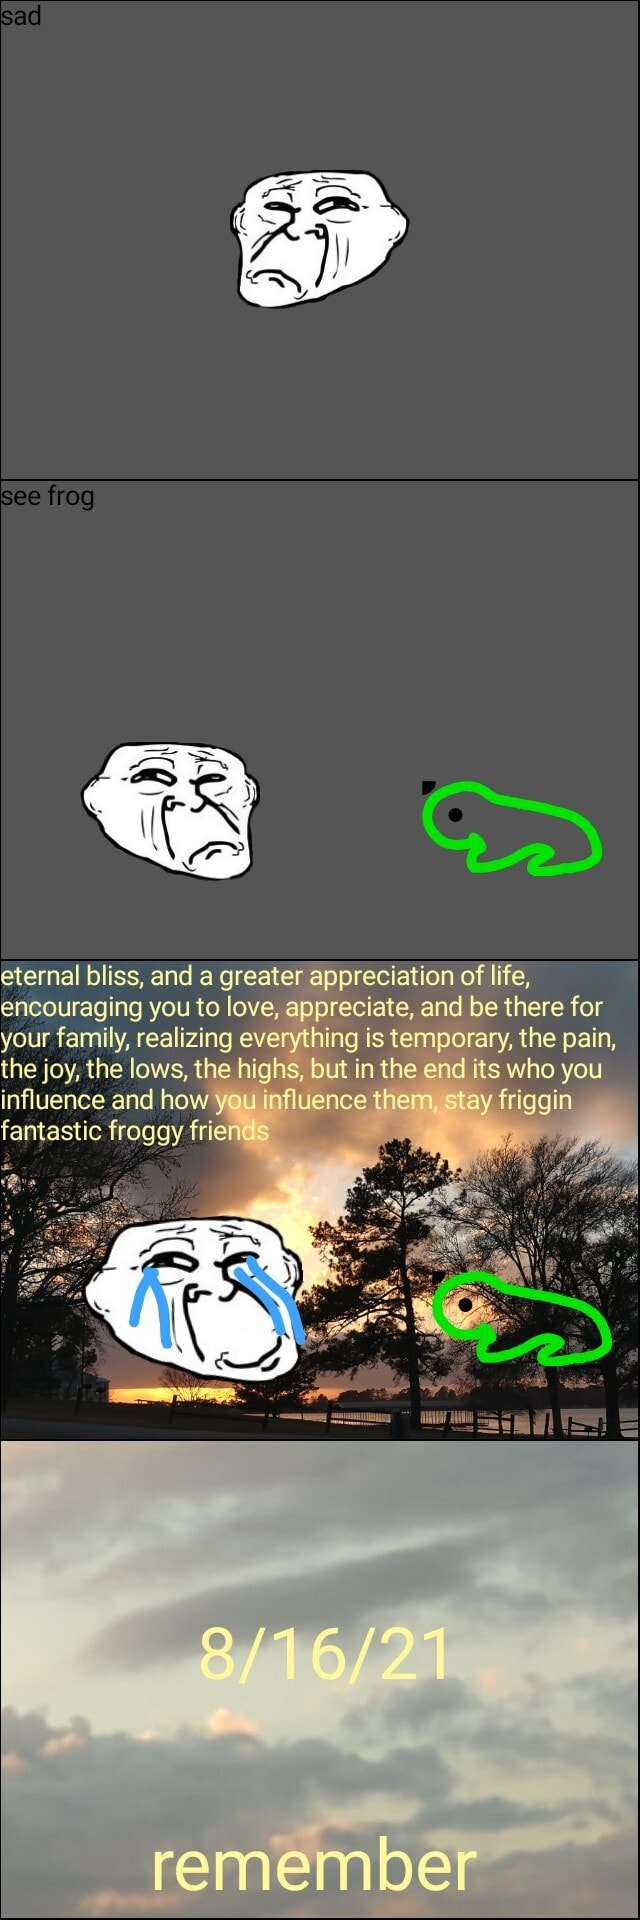 Sad eternal bliss, and a greater appreciation of life, encouraging you to love, ap preciate, and be there for your family, realizing everything is temporary, the pain, the joy, the lows, the highs, but in the end its who you influence and how you influence them slay friggin fantastic froggy friend 3 remember memes